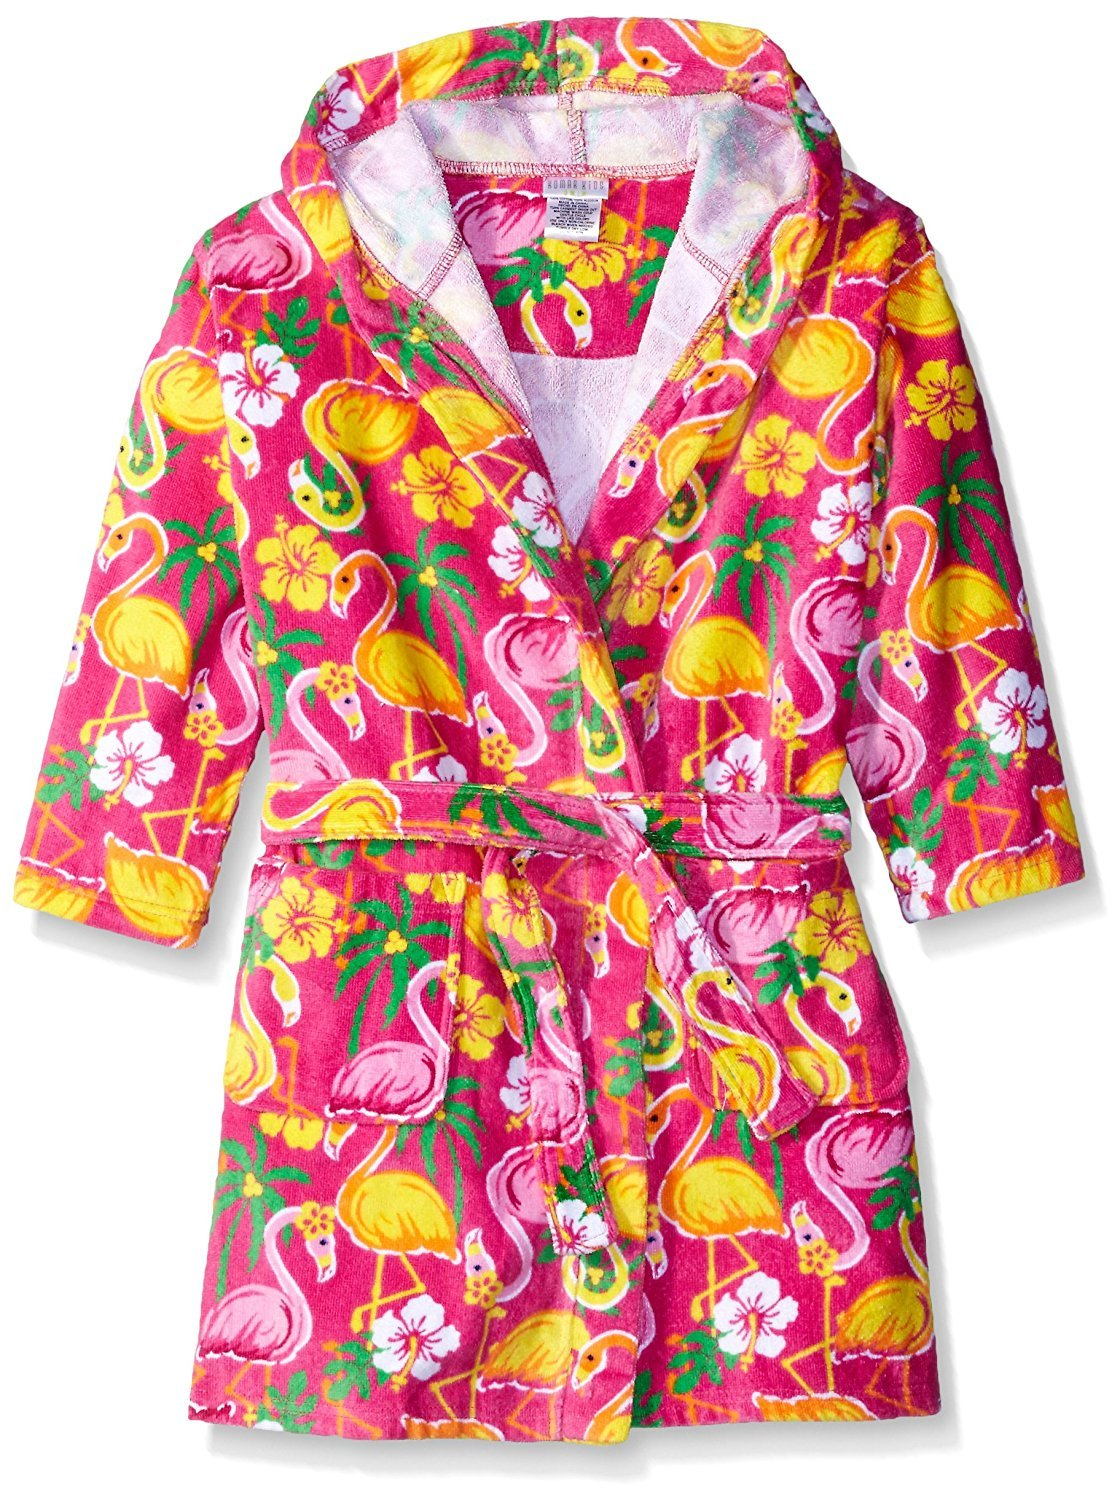 Komar Kids Girls Flamingo Print Cotton Terry Robe Cover Up, Kids Size M(7/8)